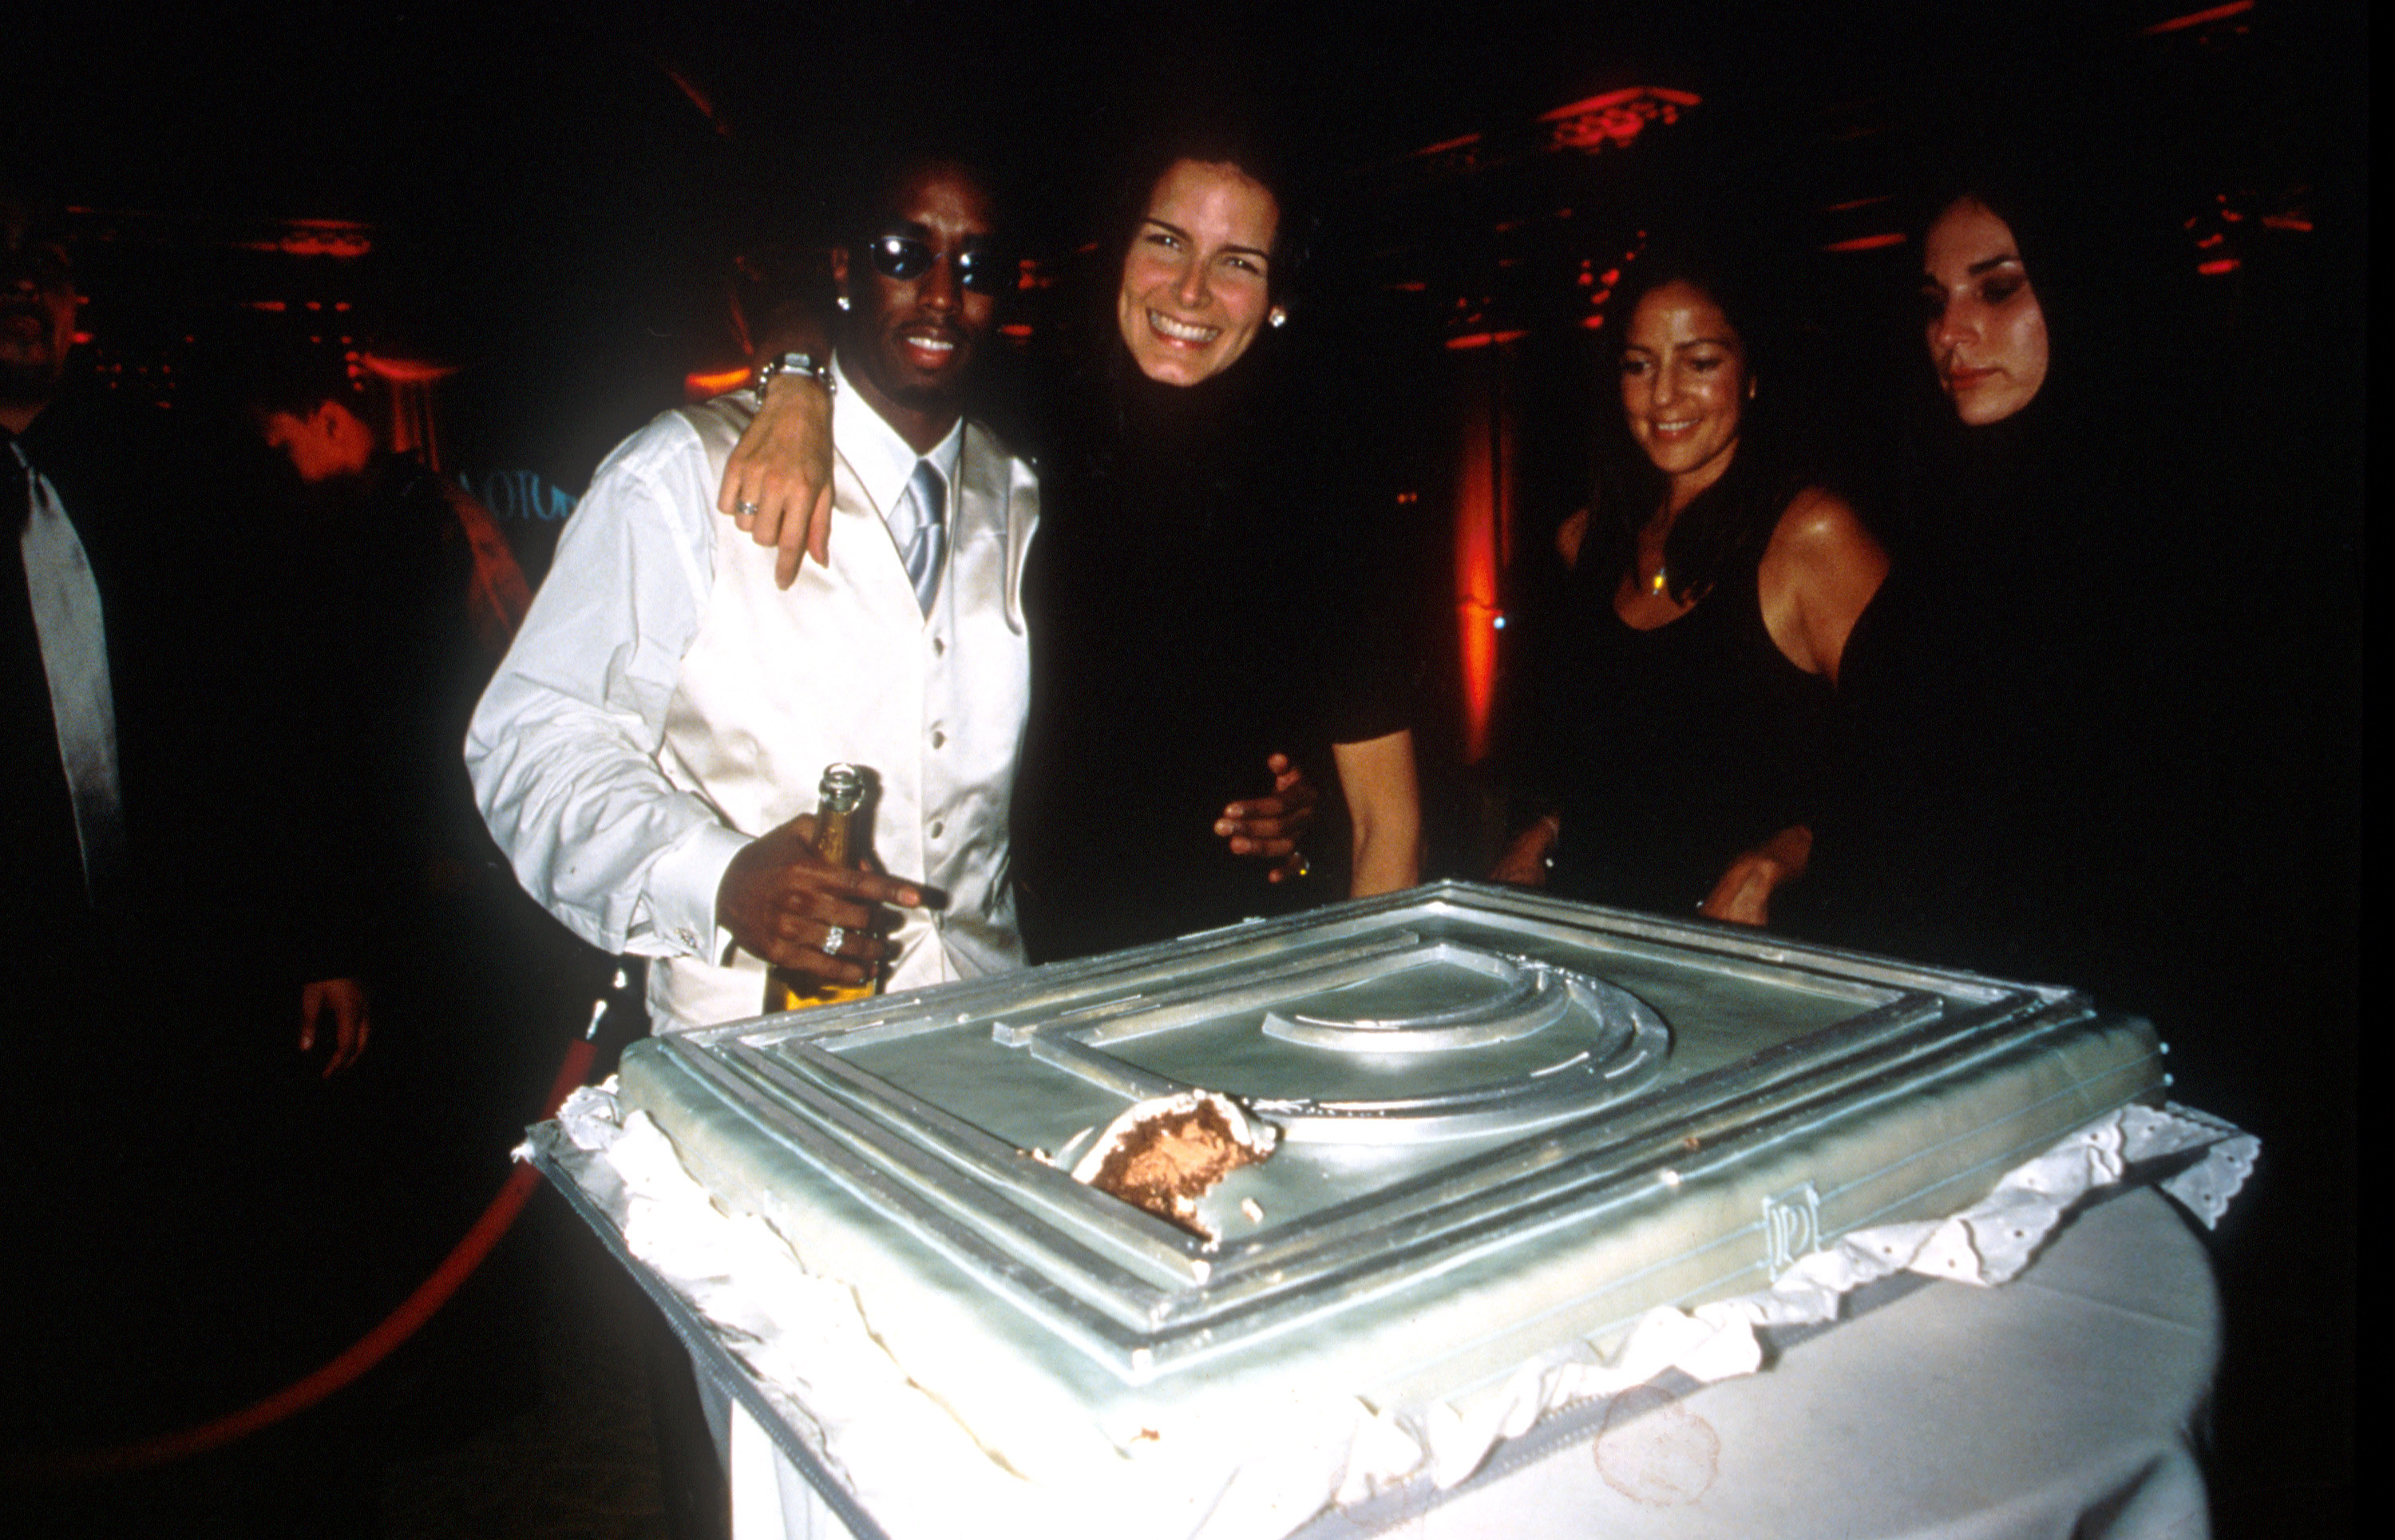 Diddy and Angie Harmon pose by a silver birthday cake